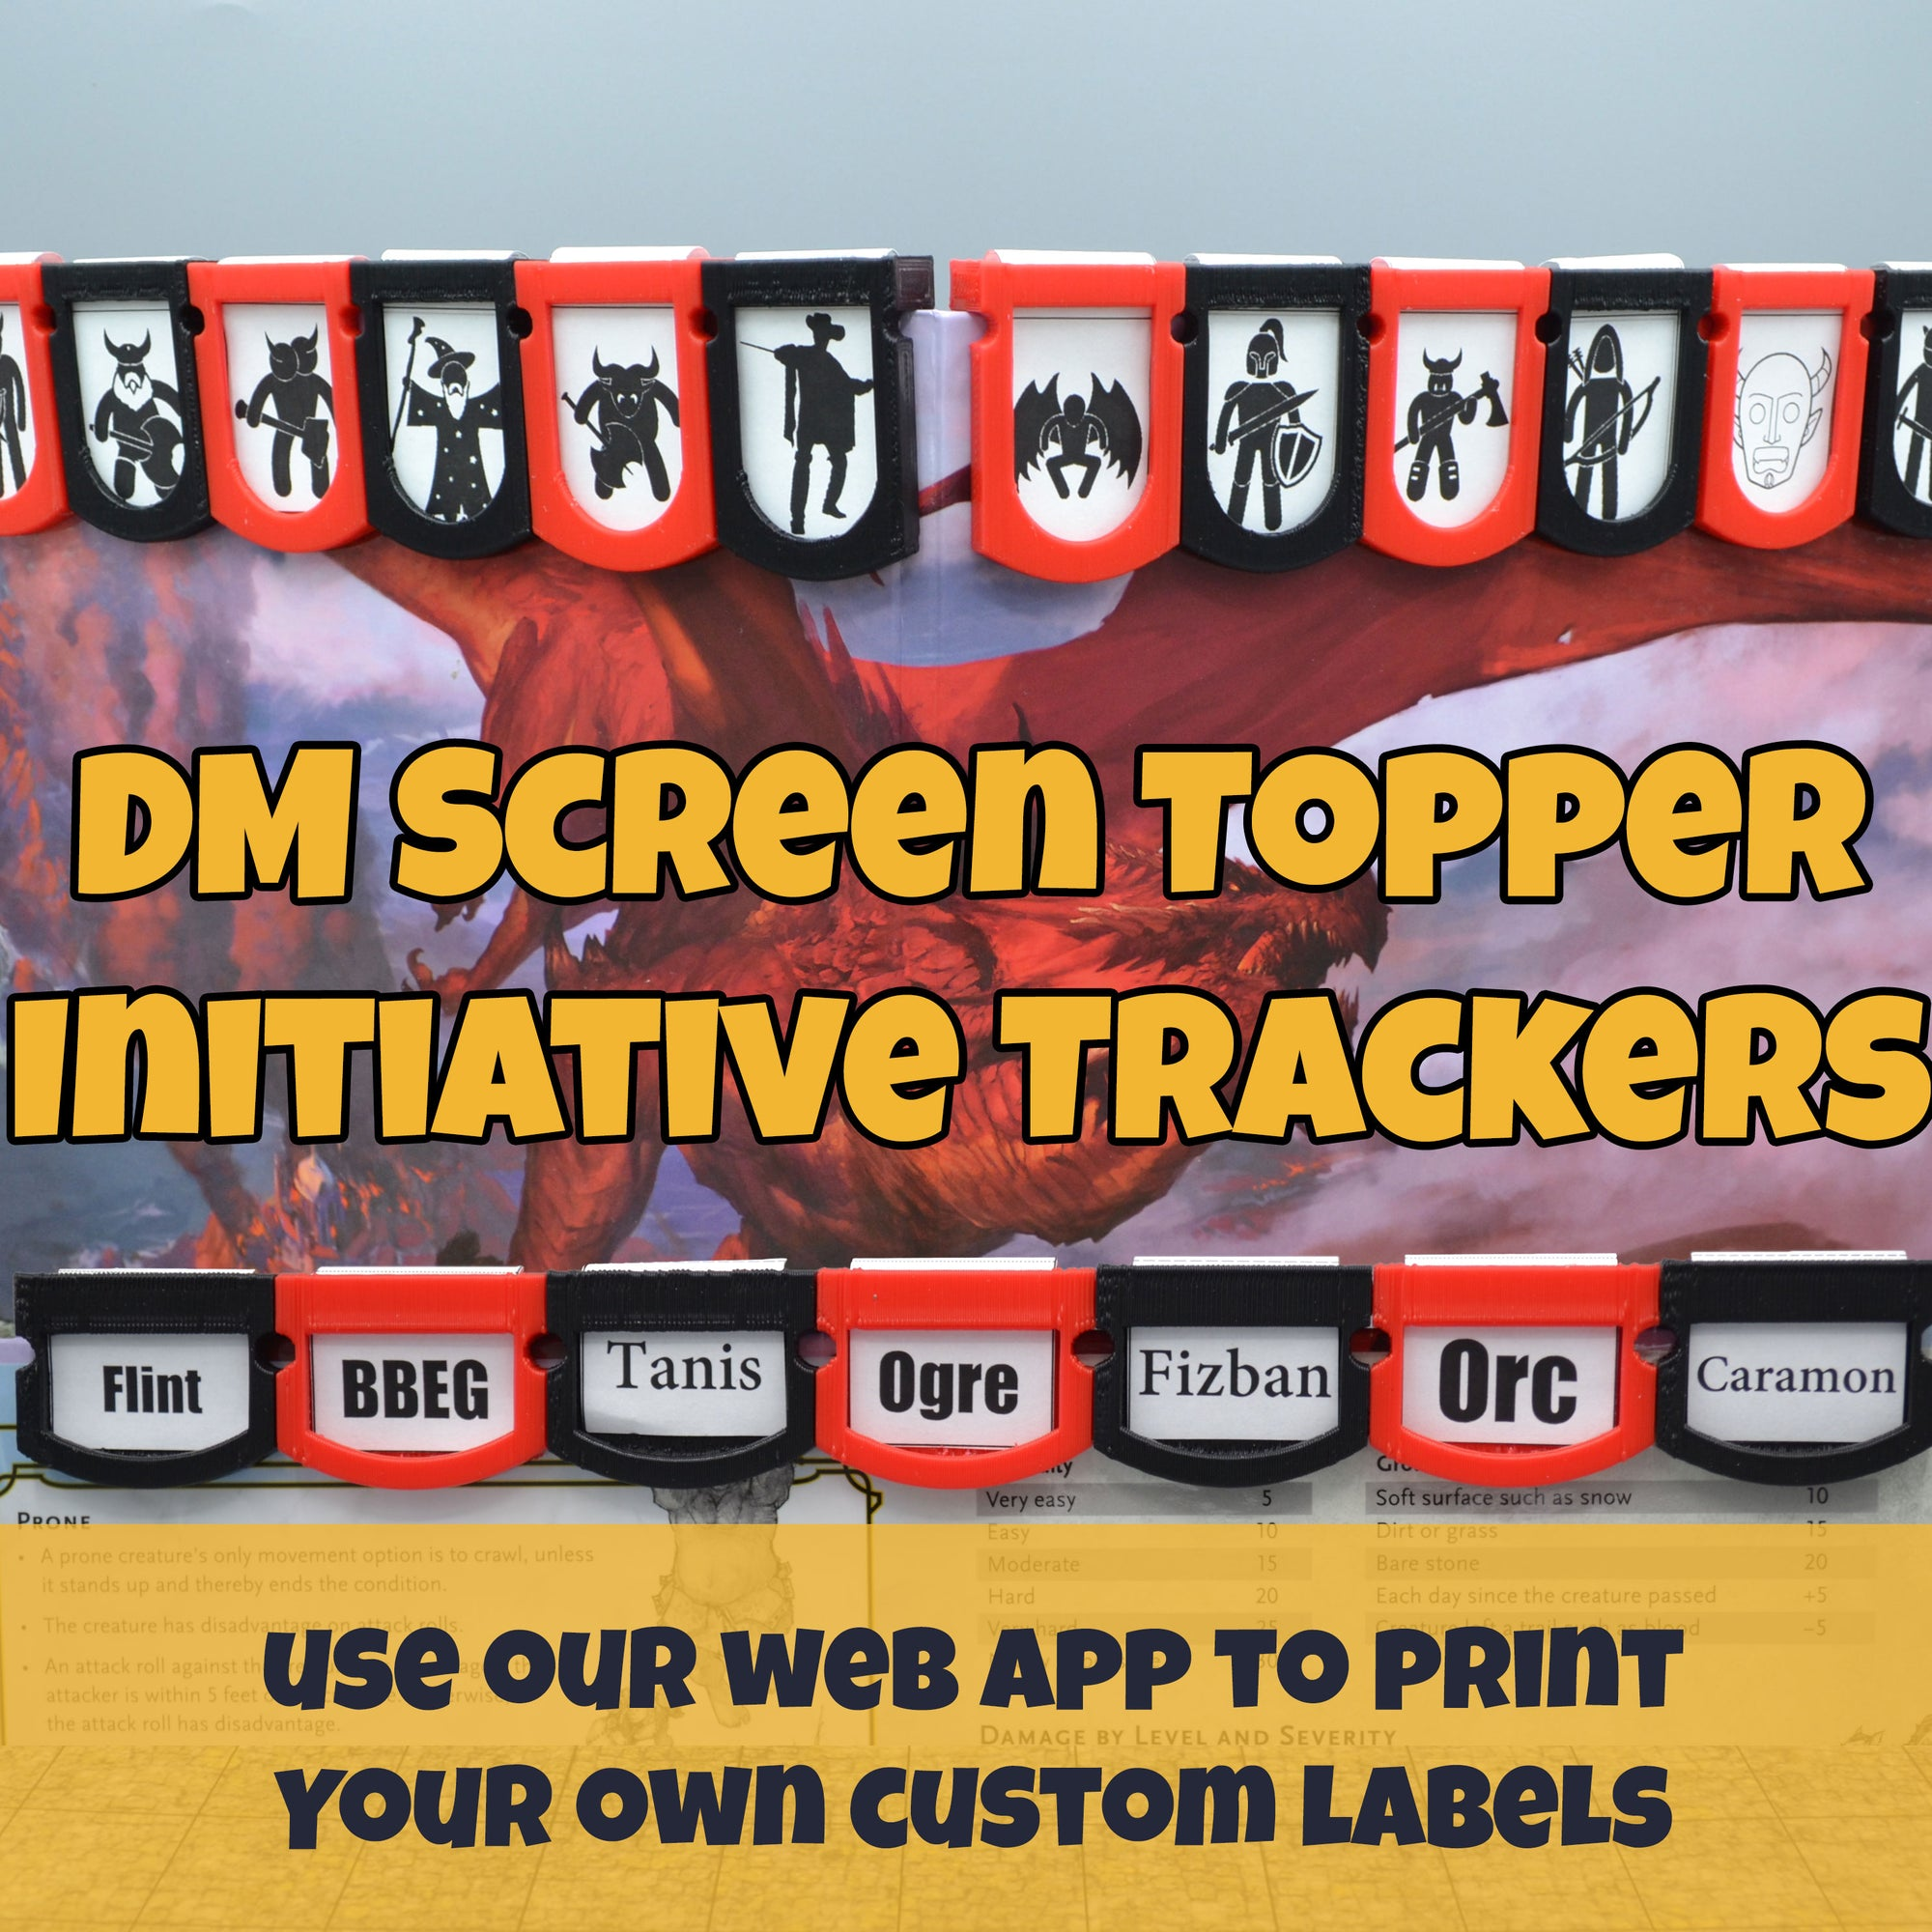 initiative trackers